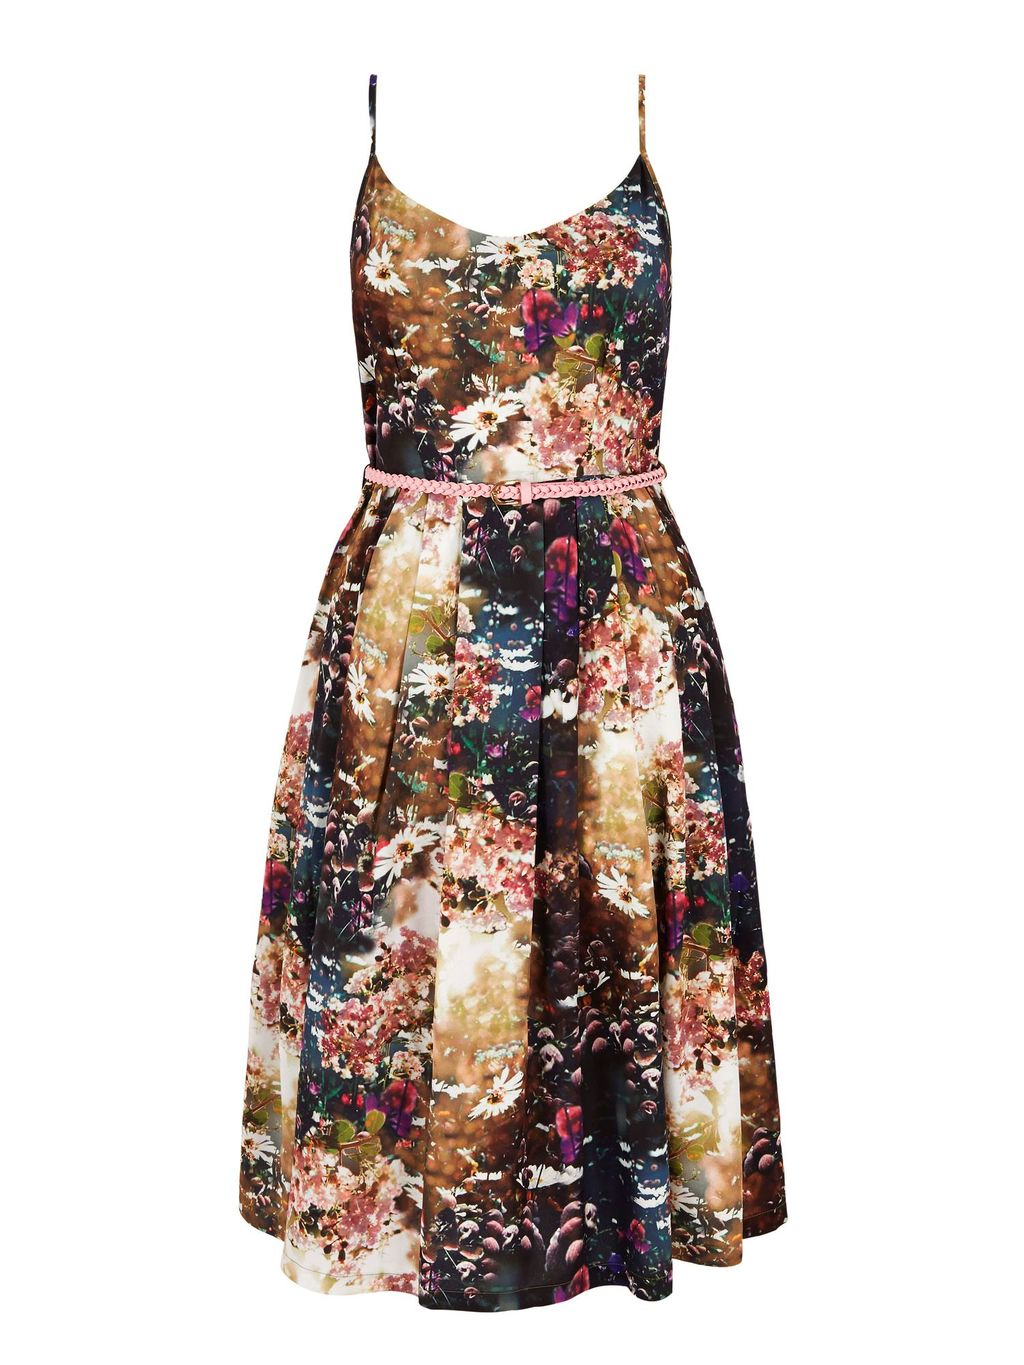 Floral Print Day Dress With Belt, Multi Coloured - neckline: v-neck; sleeve style: spaghetti straps; secondary colour: ivory/cream; predominant colour: chocolate brown; occasions: evening; length: on the knee; fit: fitted at waist & bust; style: fit & flare; fibres: polyester/polyamide - 100%; sleeve length: sleeveless; pattern type: fabric; pattern: florals; texture group: other - light to midweight; multicoloured: multicoloured; season: s/s 2016; wardrobe: event